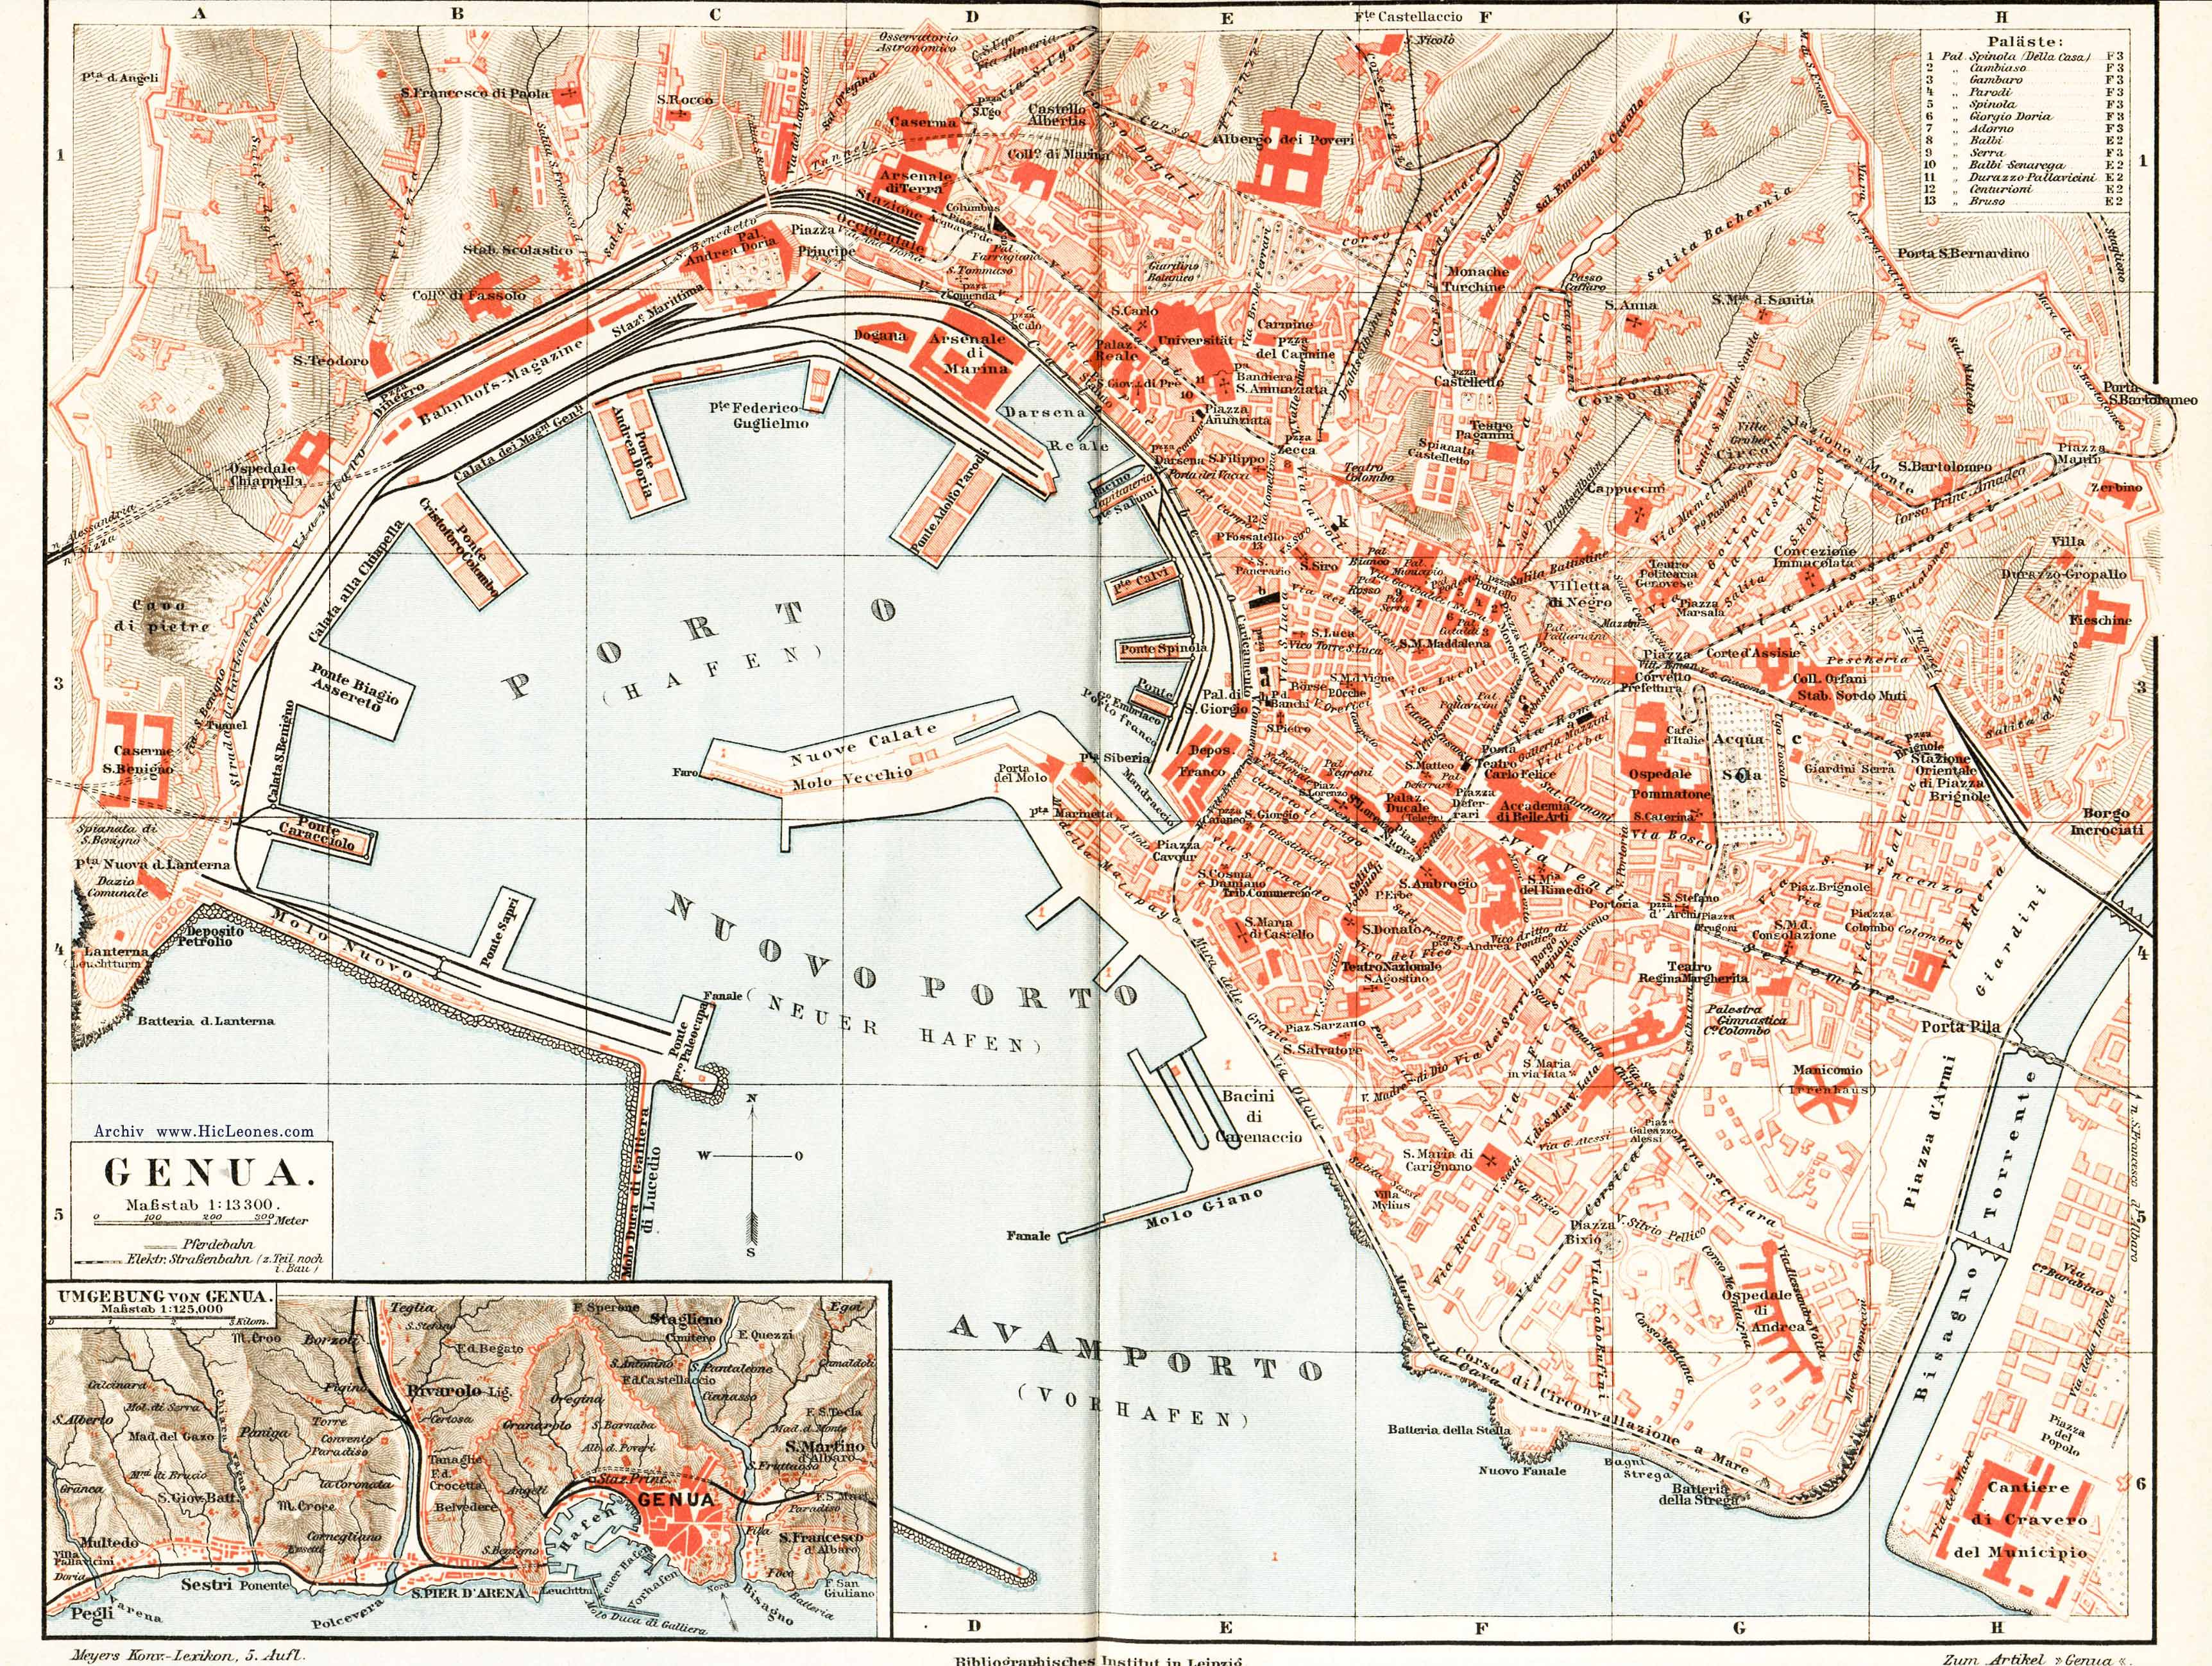 Free maps of northern italy genoa map maps in public domain free royalty free royalty free download high quality non copyright copyright free creative commons gumiabroncs Choice Image